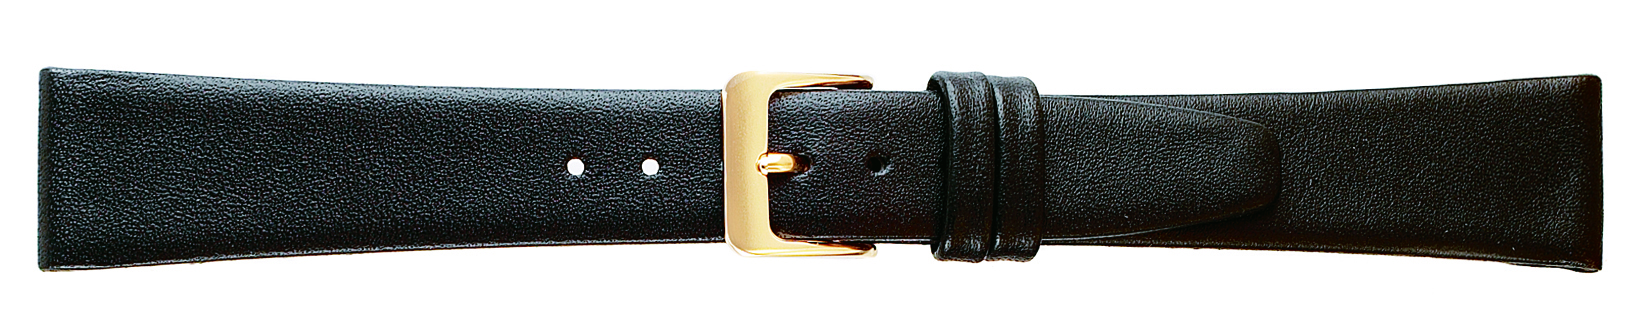 14MM Leather Band Black Smooth Calf Extra Long-0